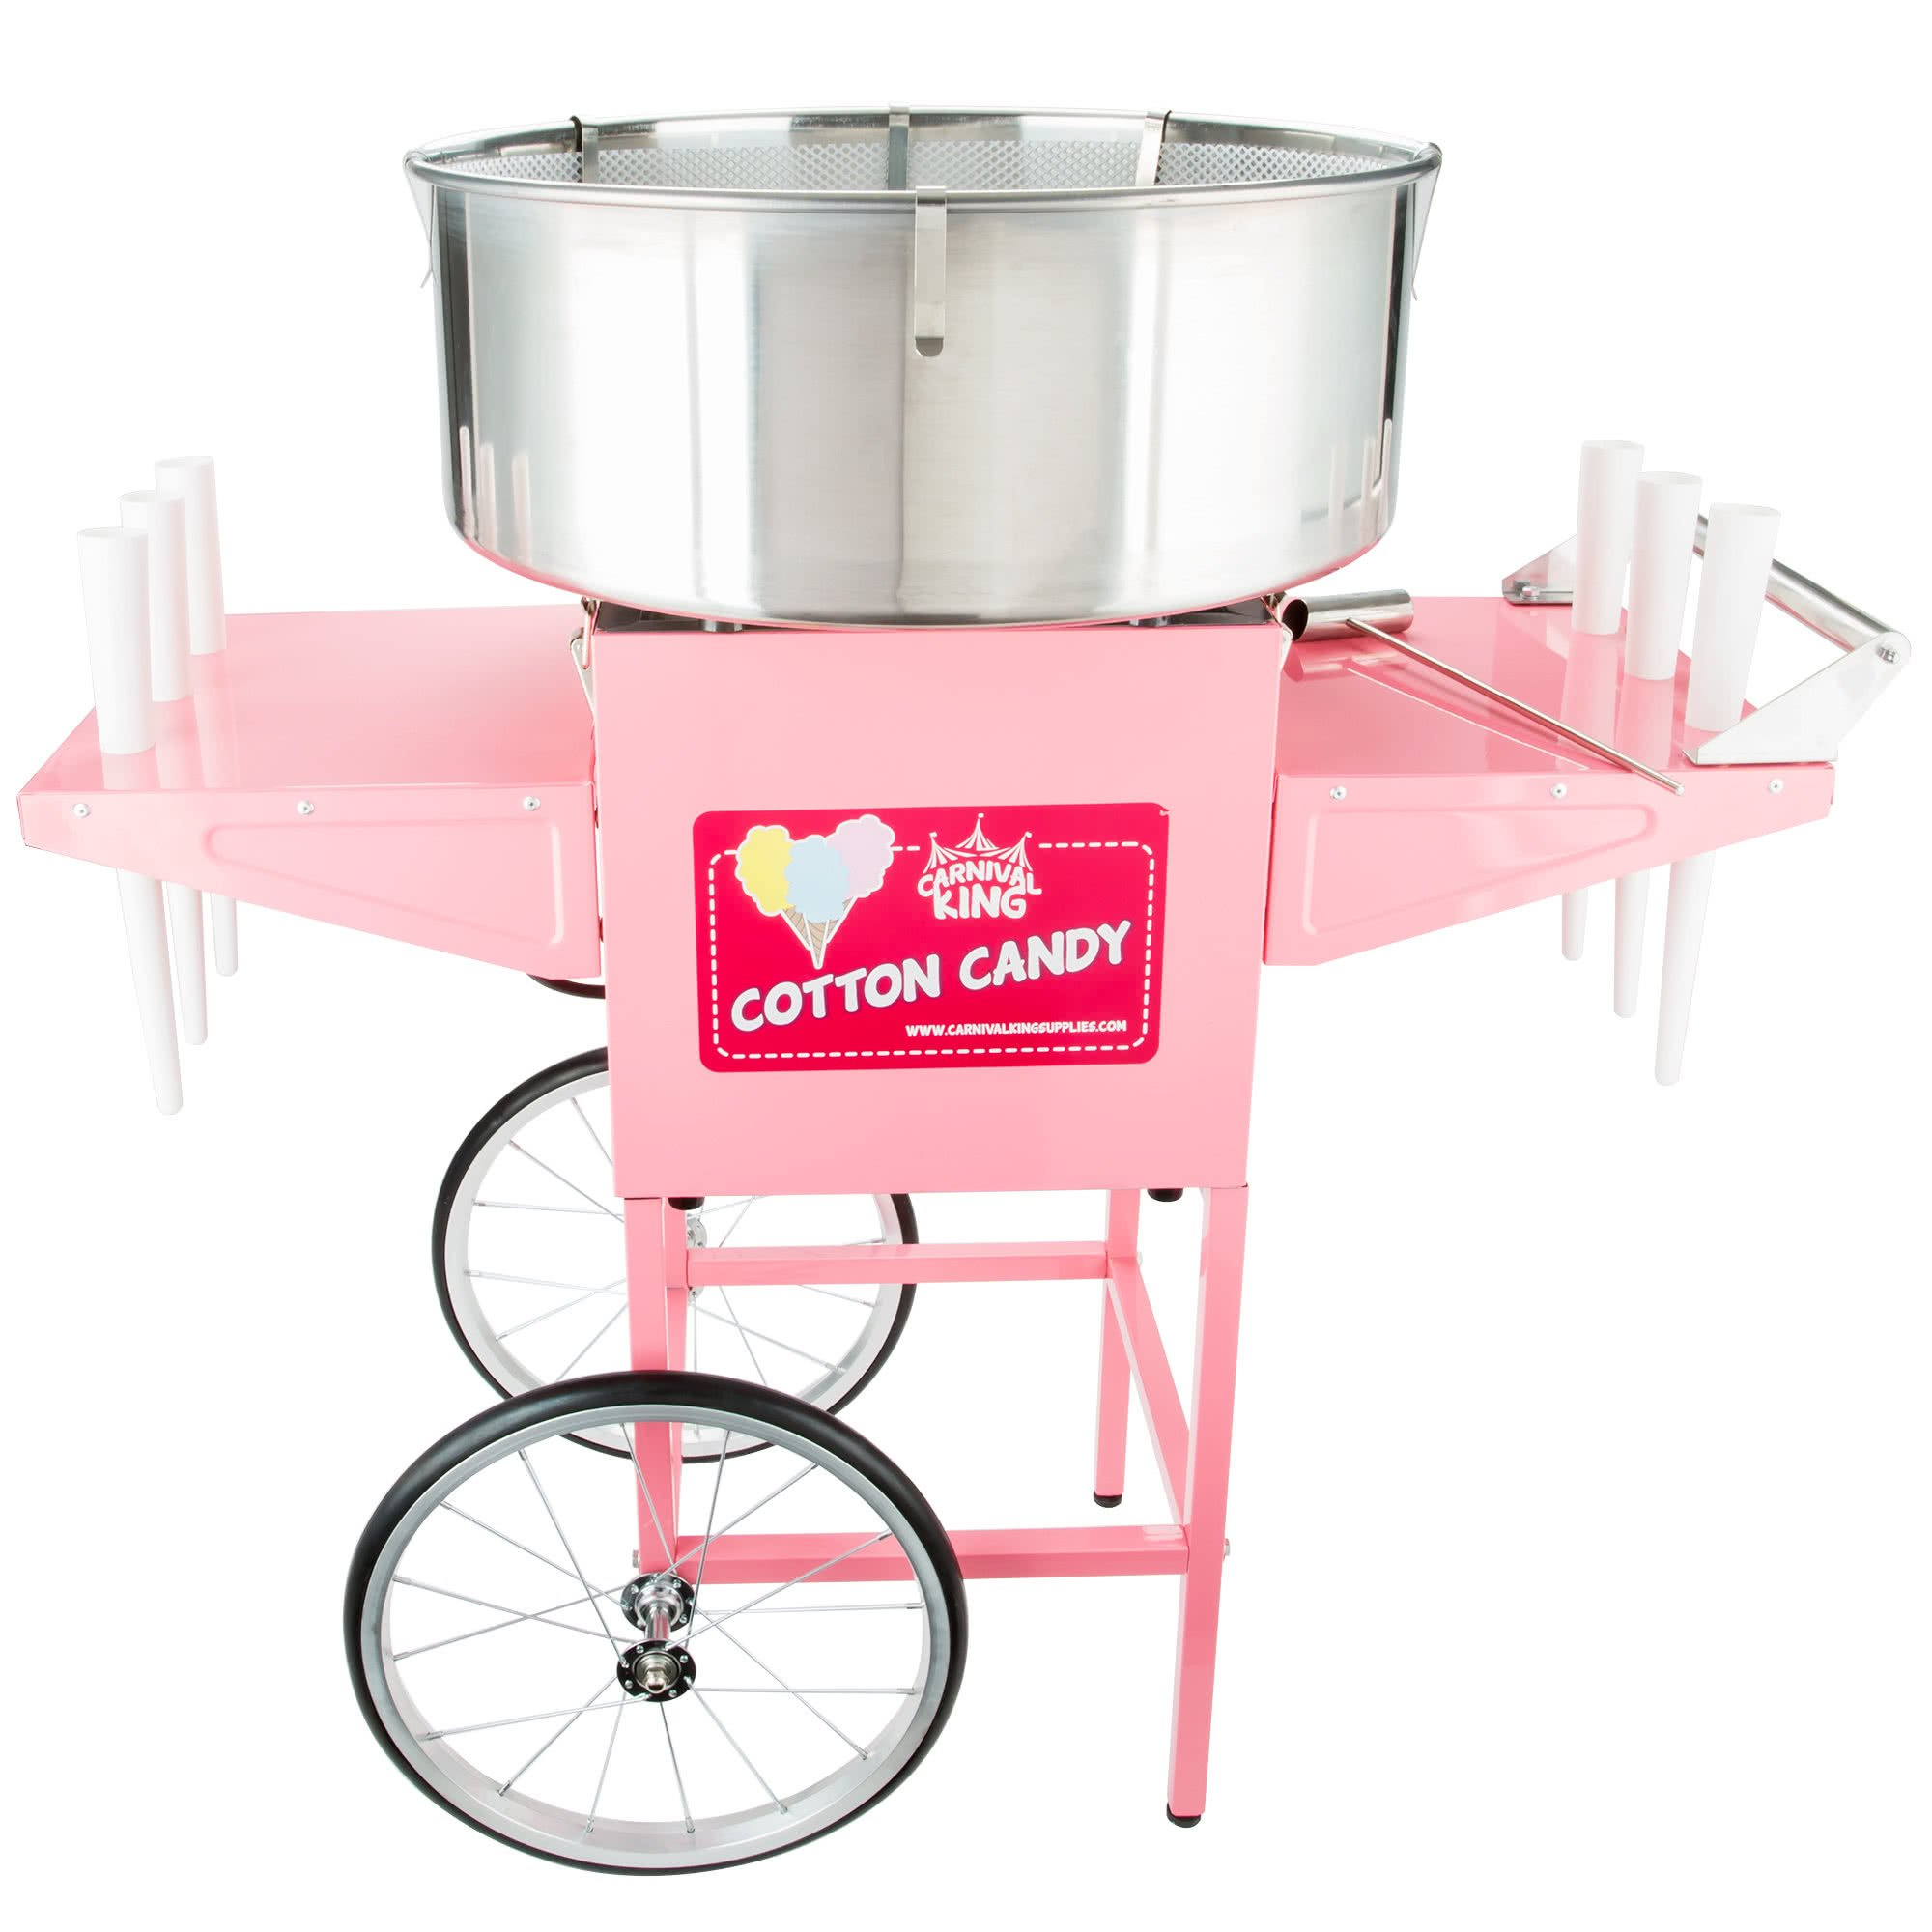 CCM21CT Cotton Candy Machine with 21'' Stainless Steel Bowl and Cart - 110V, 1050W by TableTop king